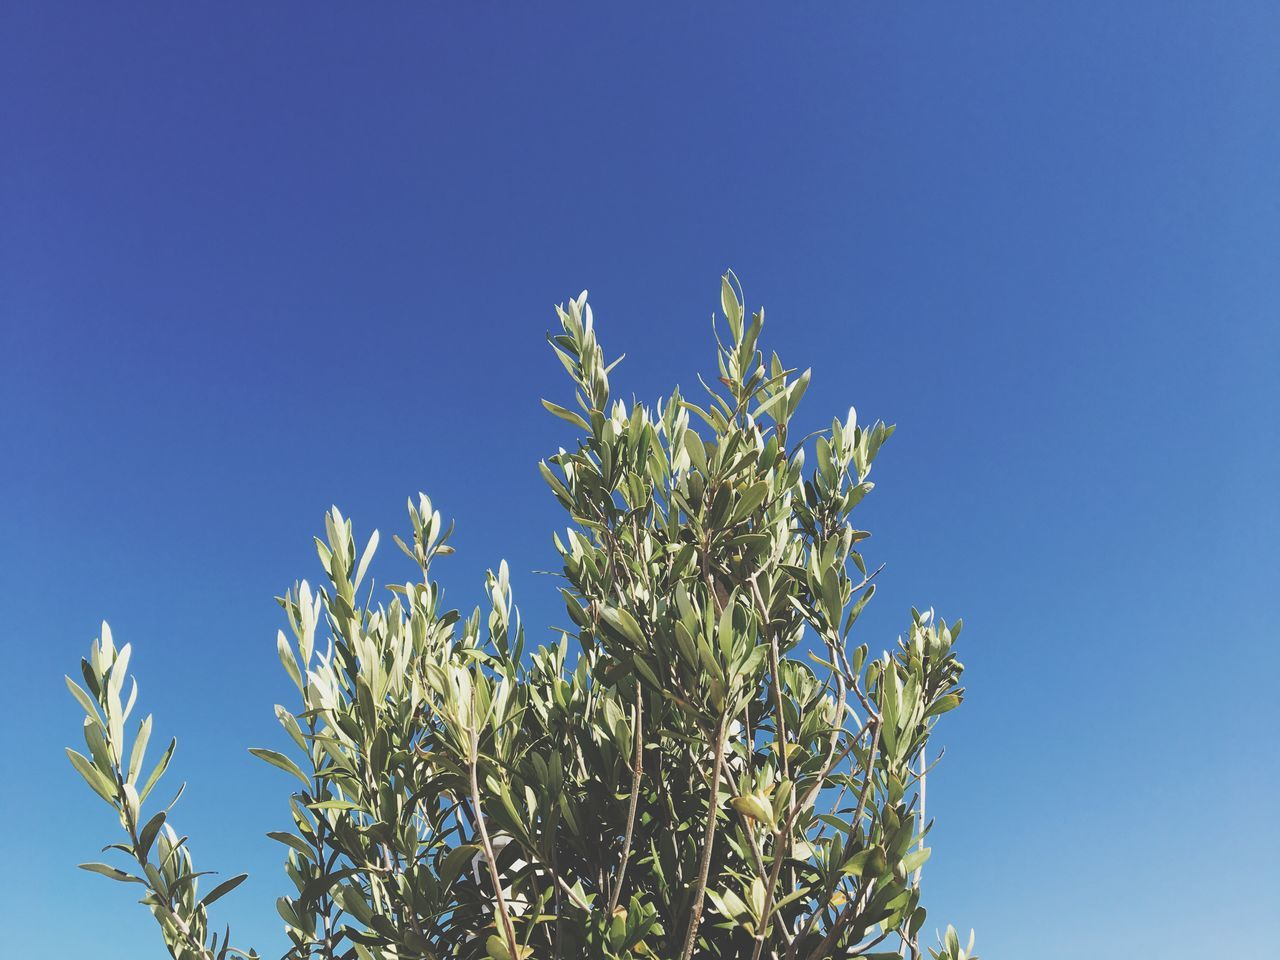 Growth Blue Clear Sky Nature Plant Low Angle View No People Day Beauty In Nature Outdoors Flower Leaf Freshness Tree Fragility Close-up Flower Head Sky Olive Olive Tree